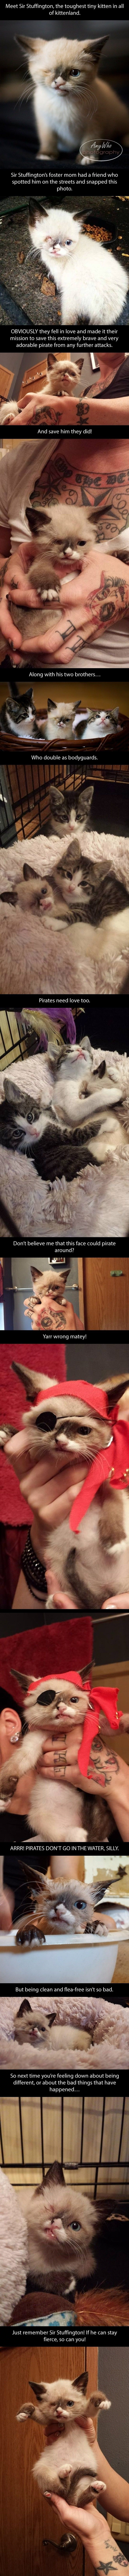 Not a cat person but this is so great